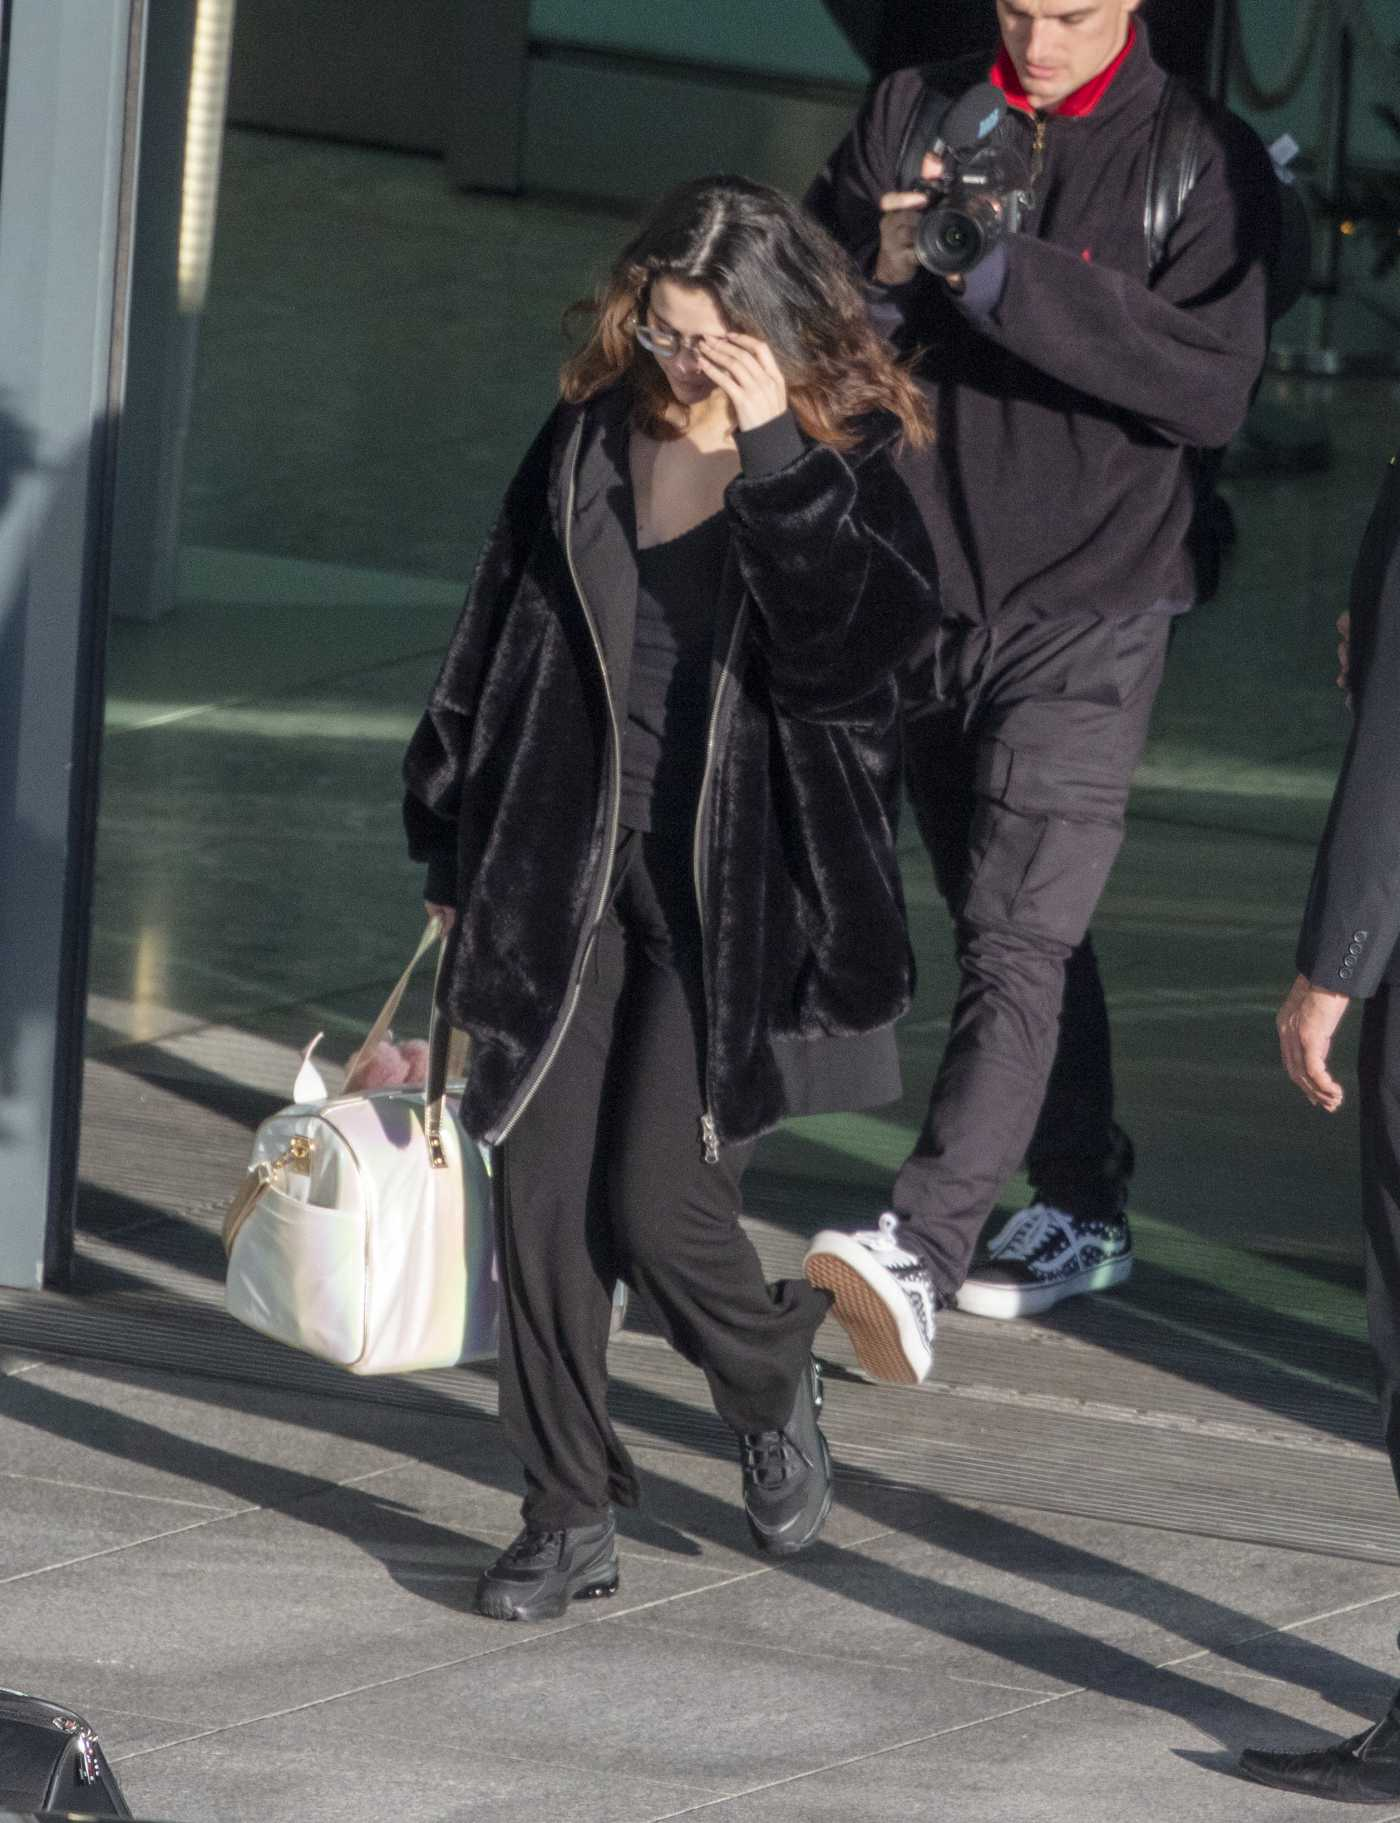 Selena Gomez in a Black Fur Coat Arrives at Heatrow Airport in London 12/02/2019